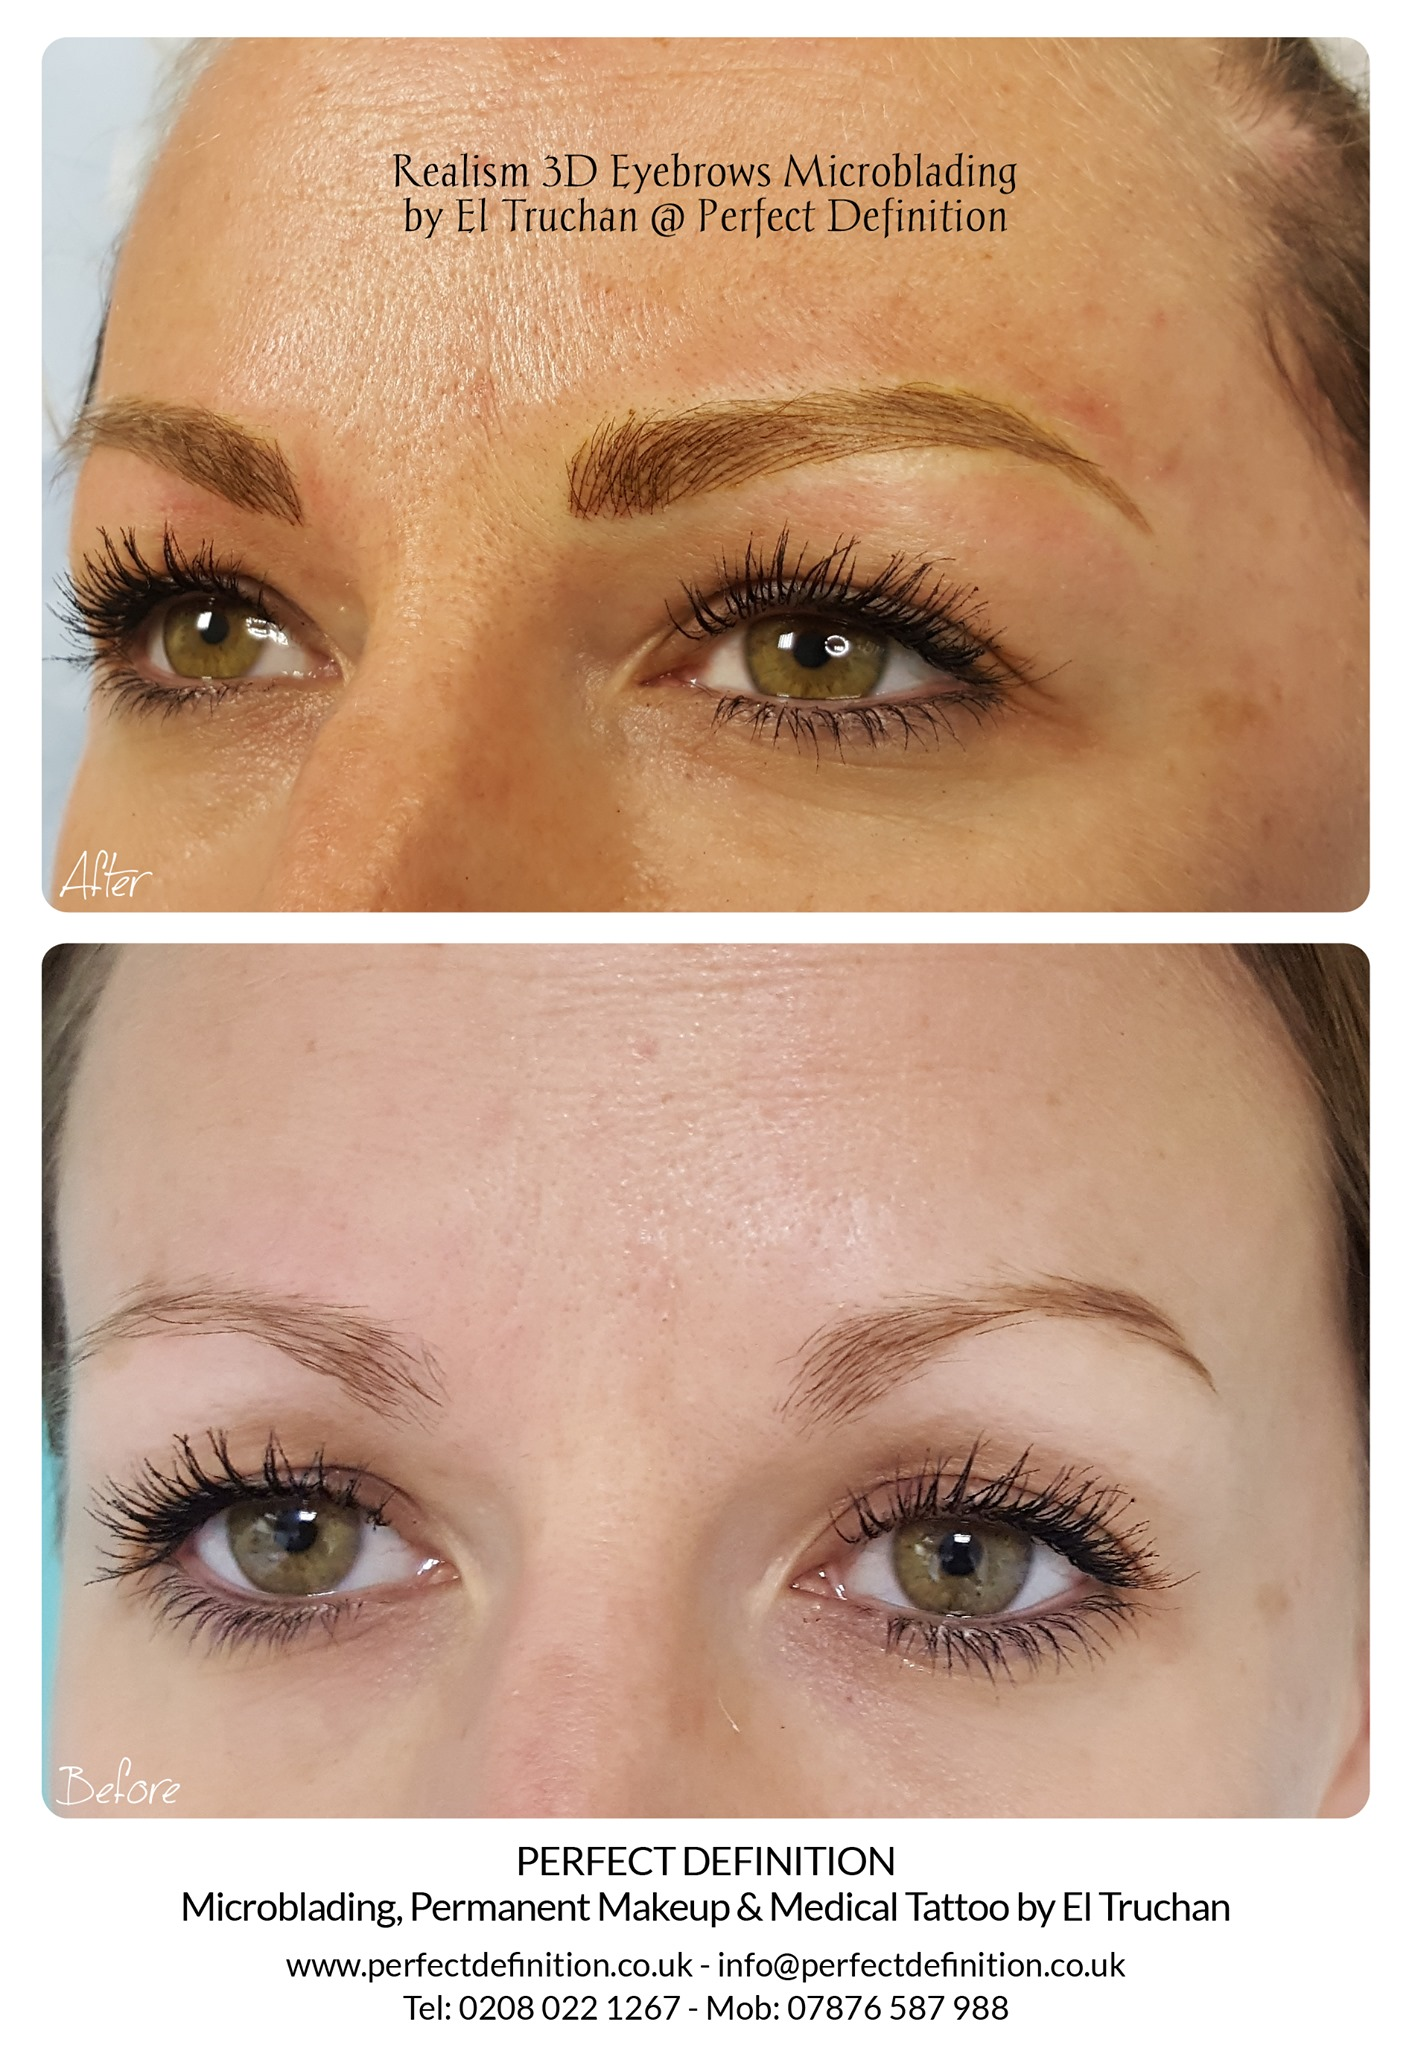 Realism 3D Eyebrows Microblading by El T